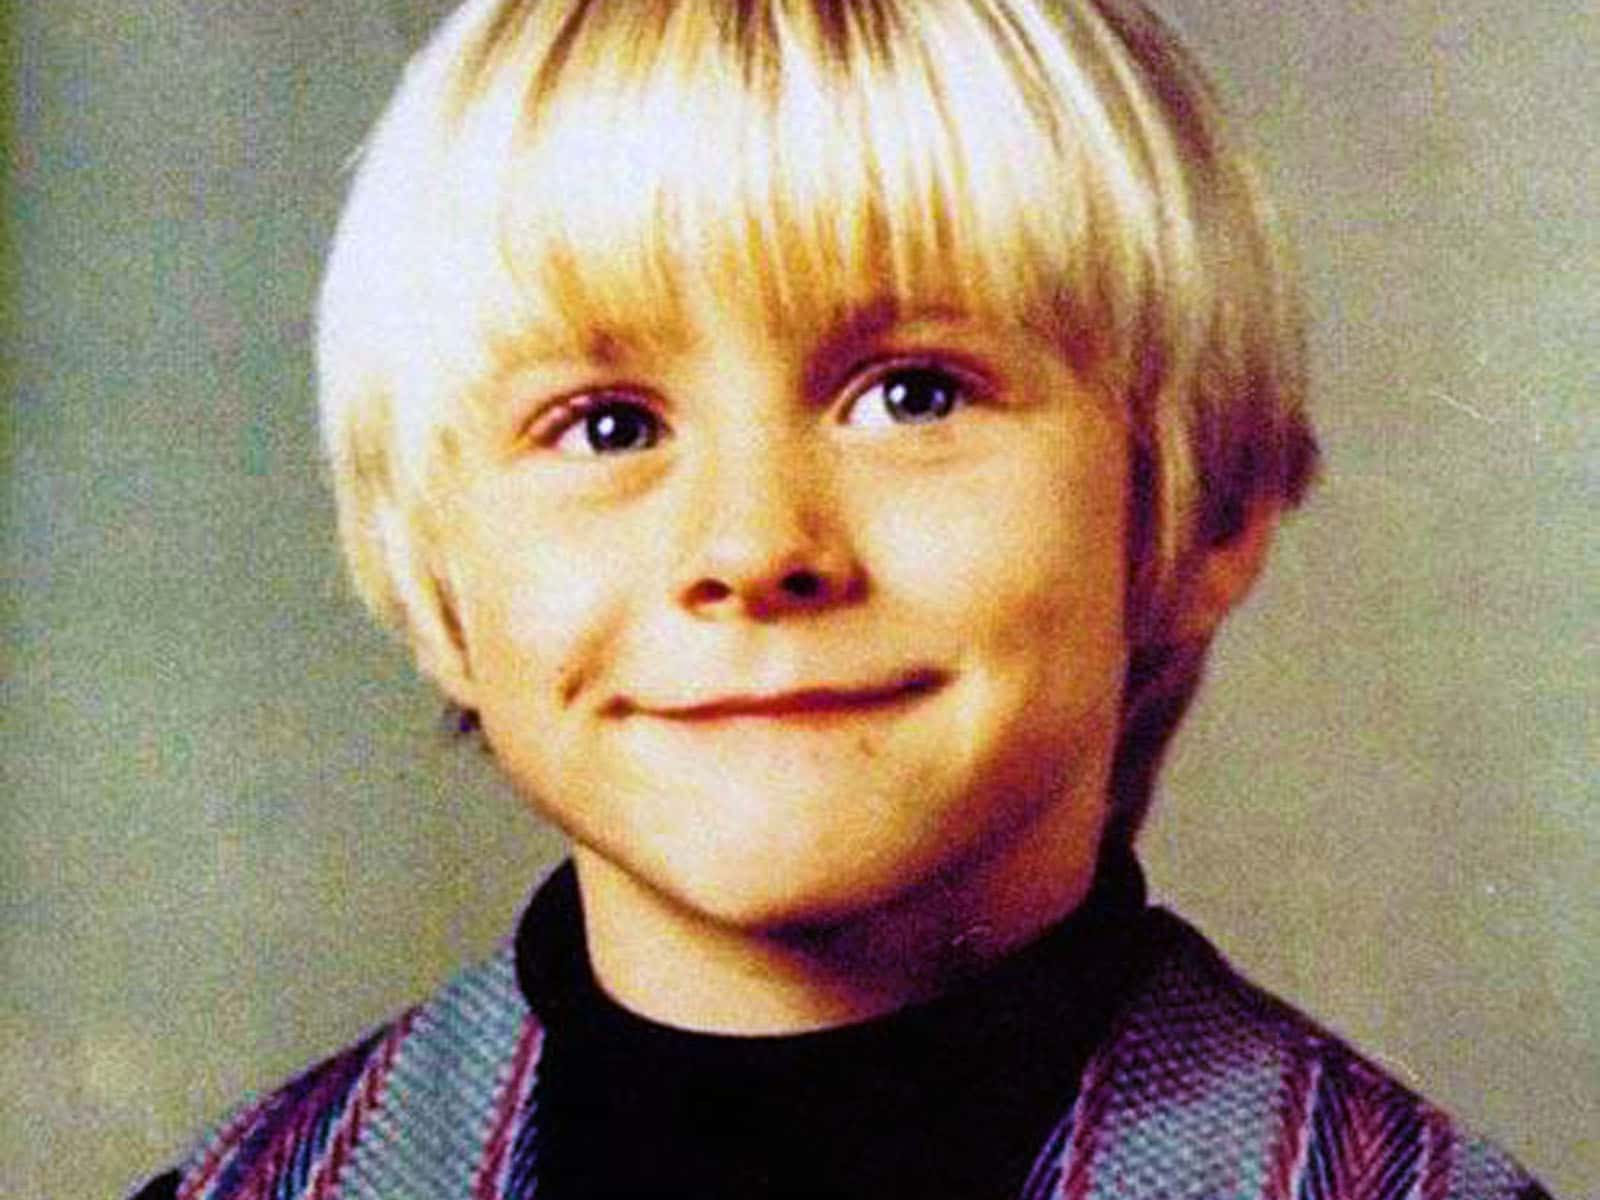 kurt-cobain-child_157191-1600x1200